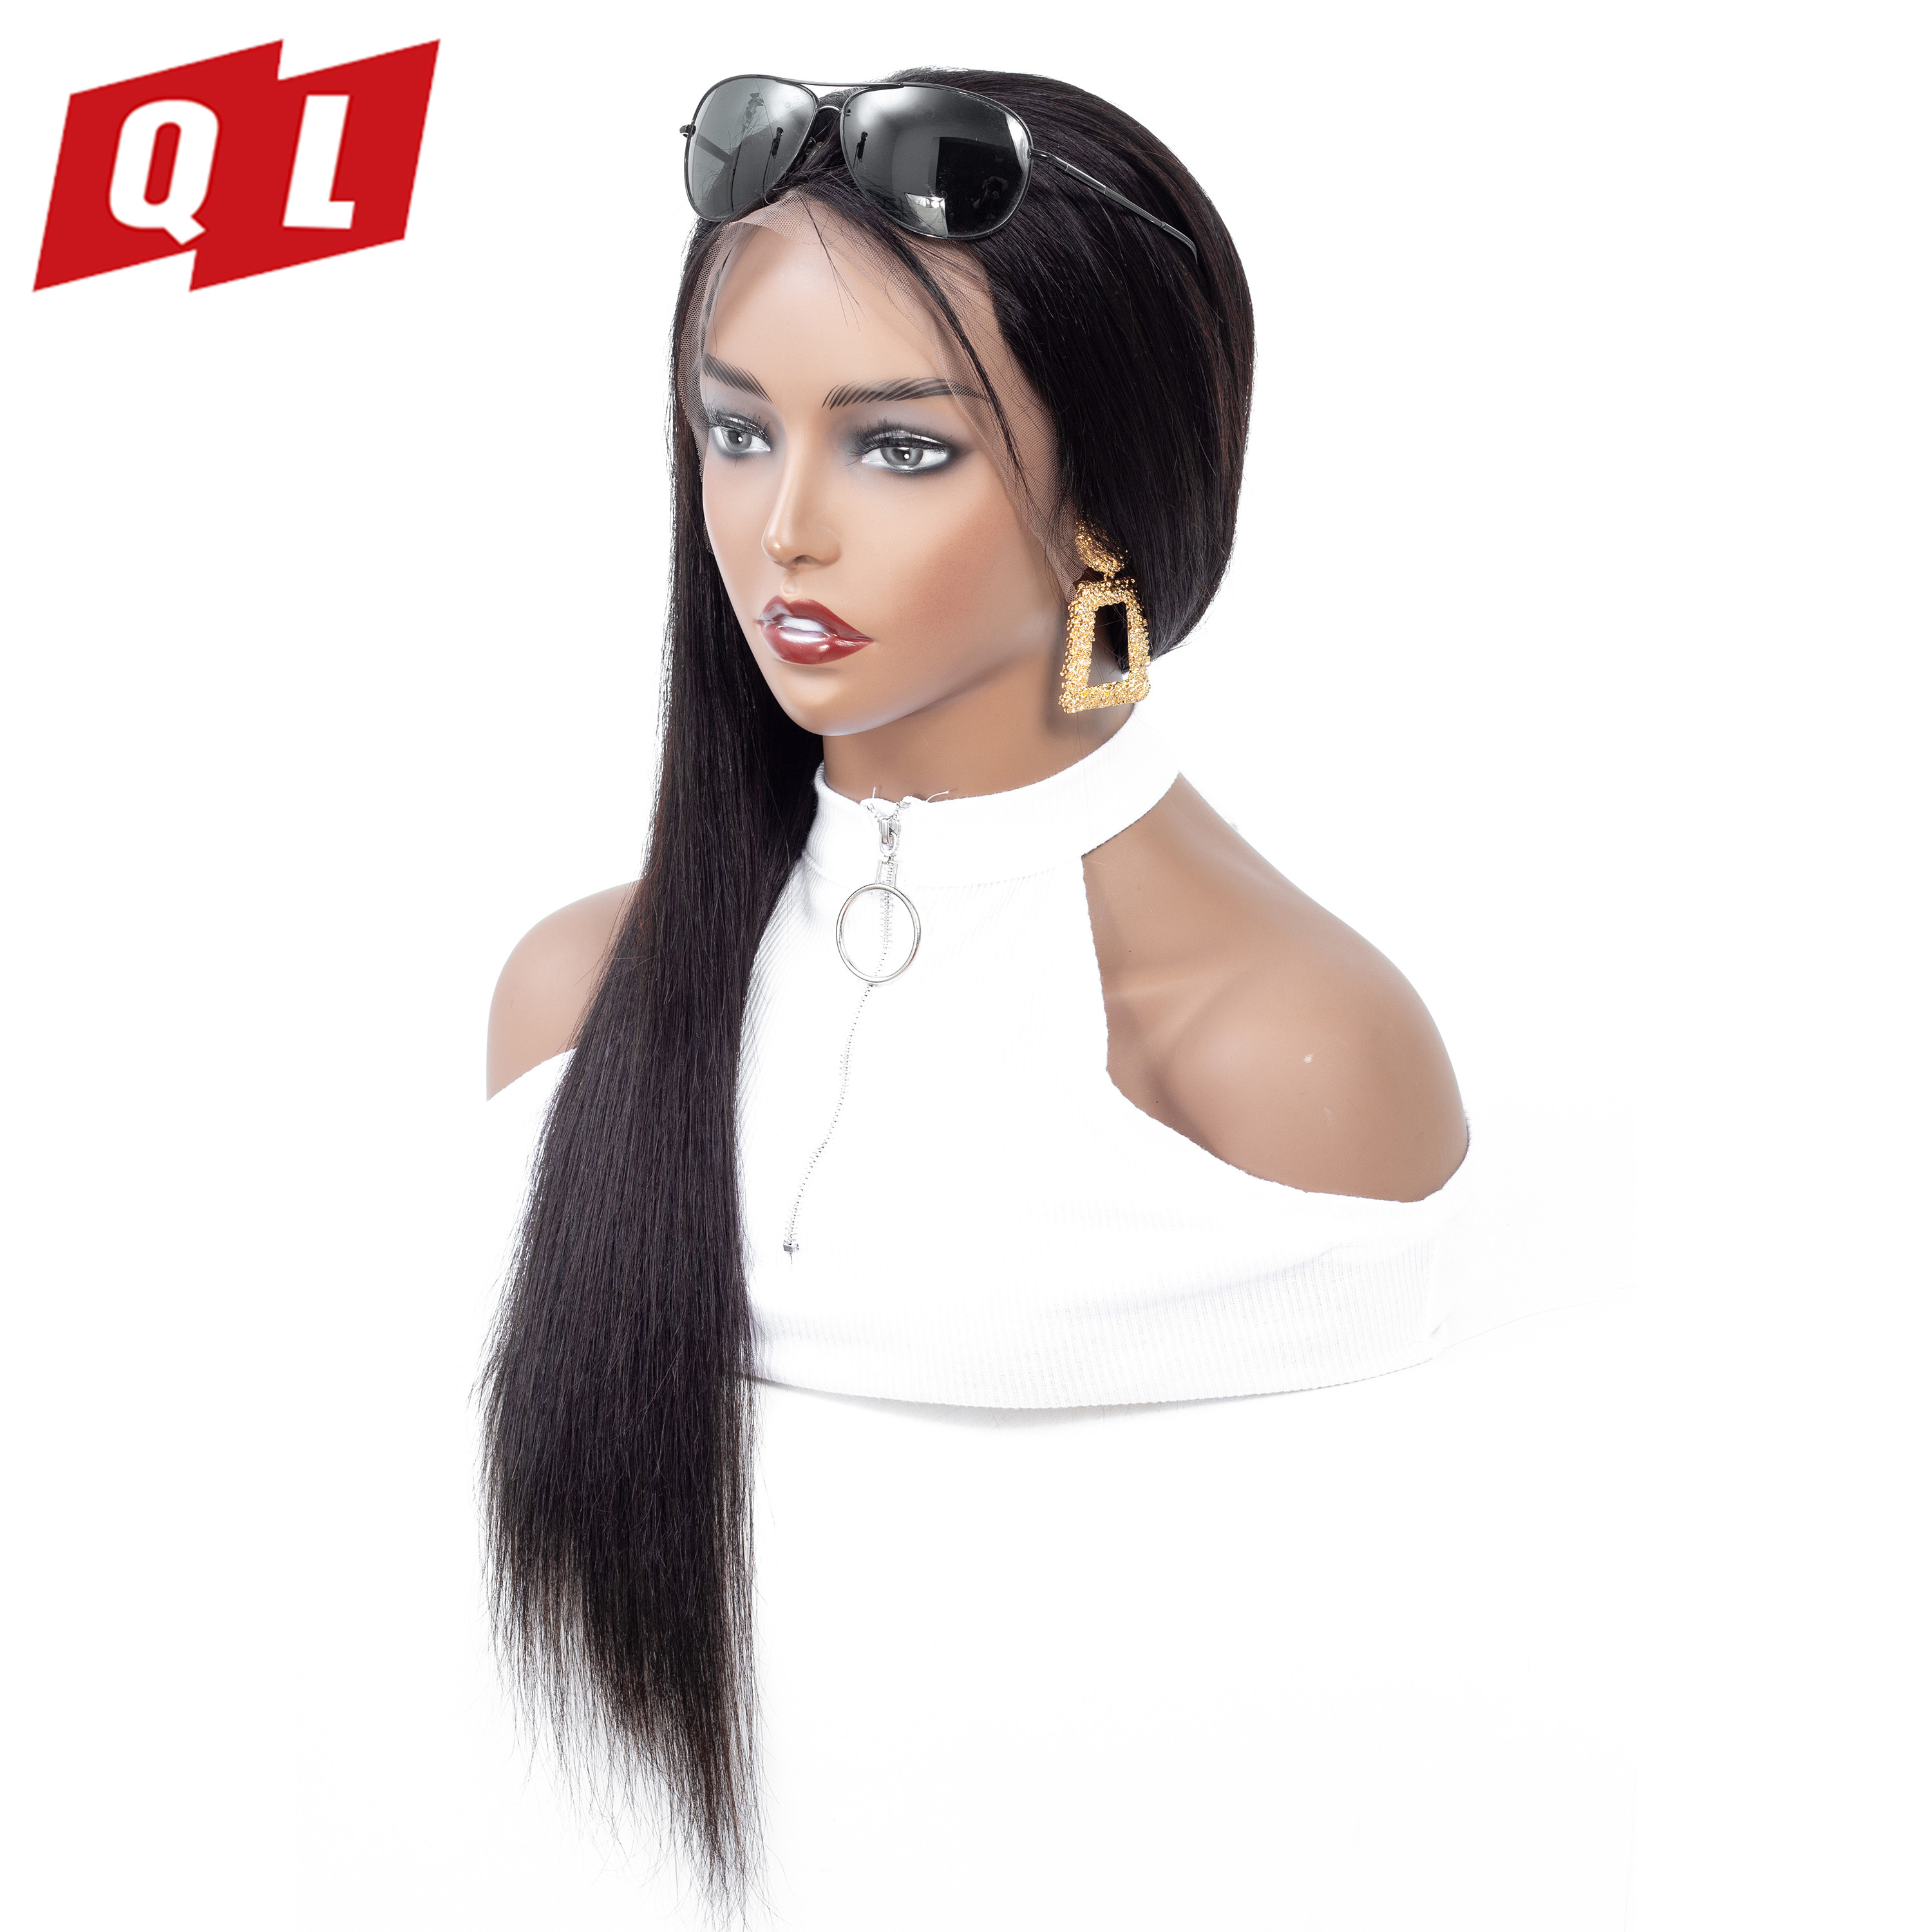 QLOVE Hair 13 4 Brazilian Straight Human Hair Wigs Lace Front Human Hair Wigs Natural Color